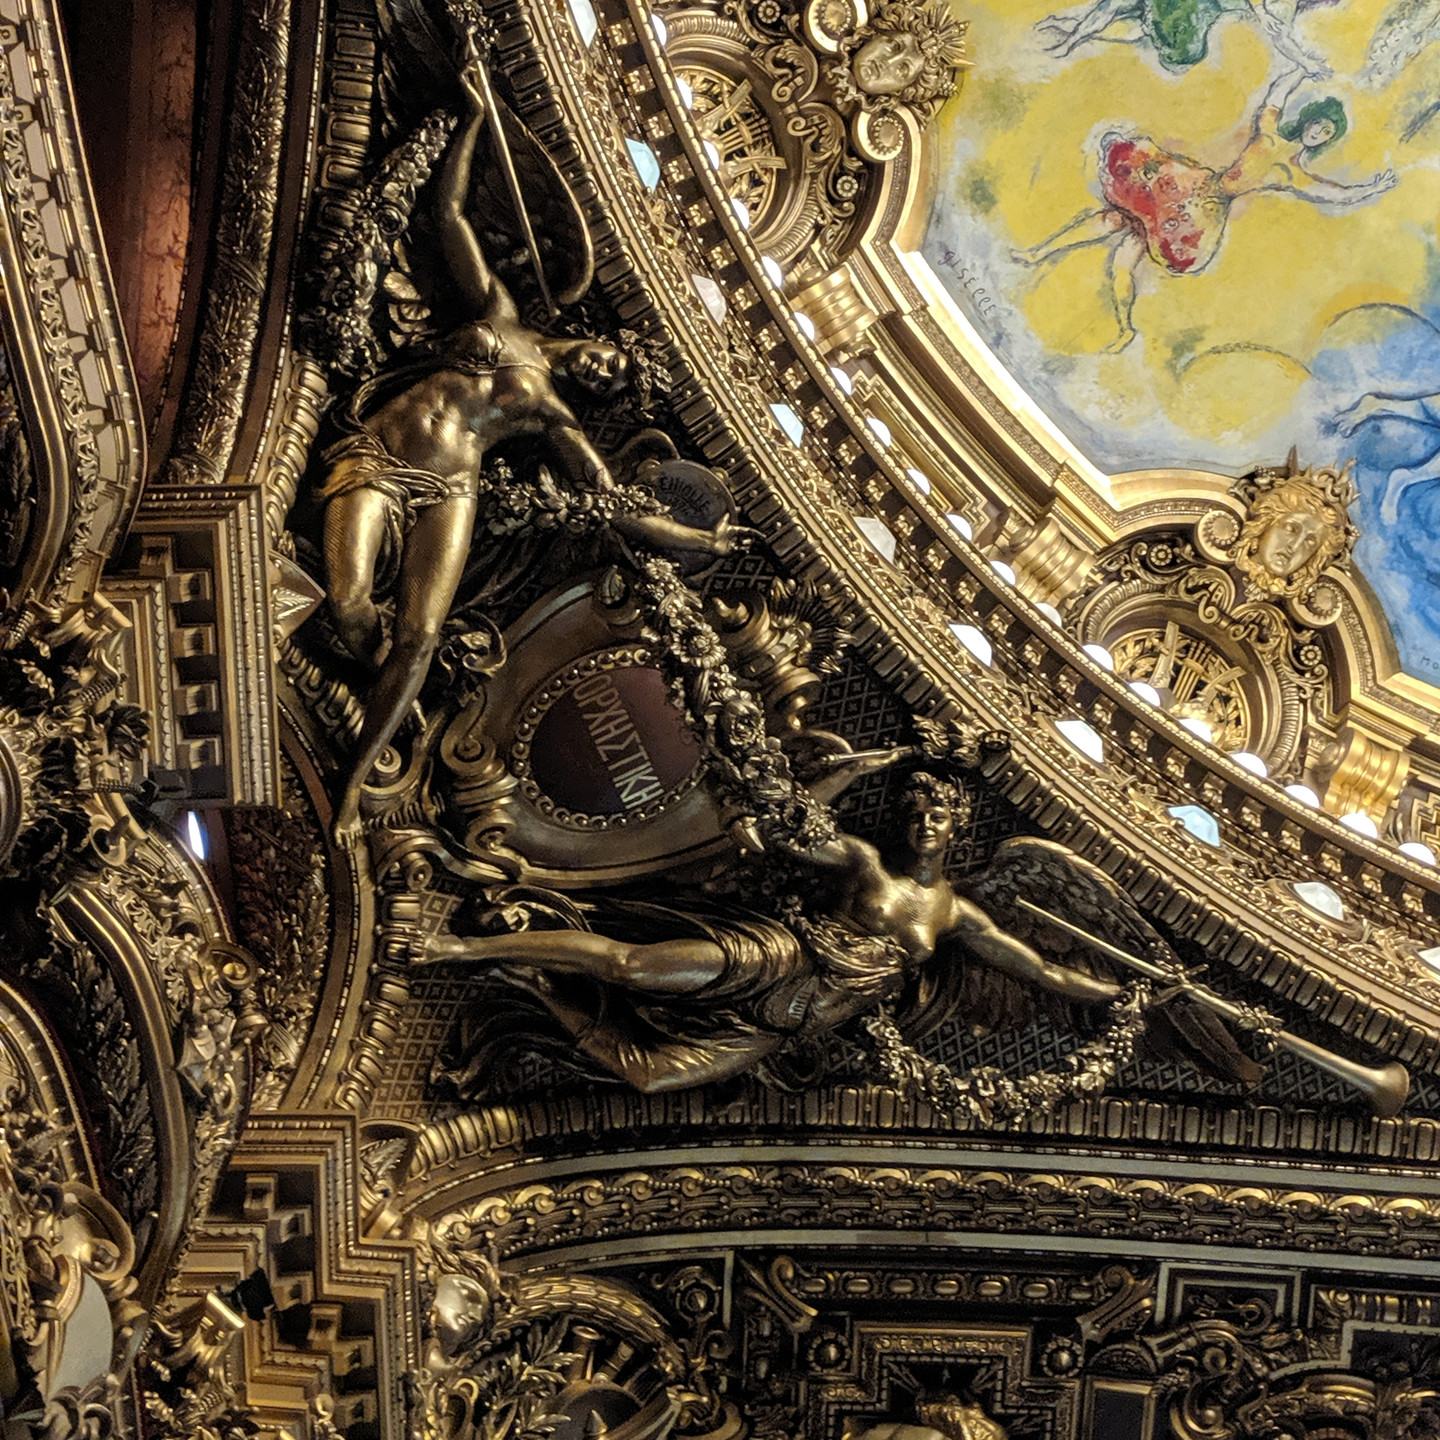 Carved Ceiling Detail in the Auditorium at the Palais Garnier Paris Opera House